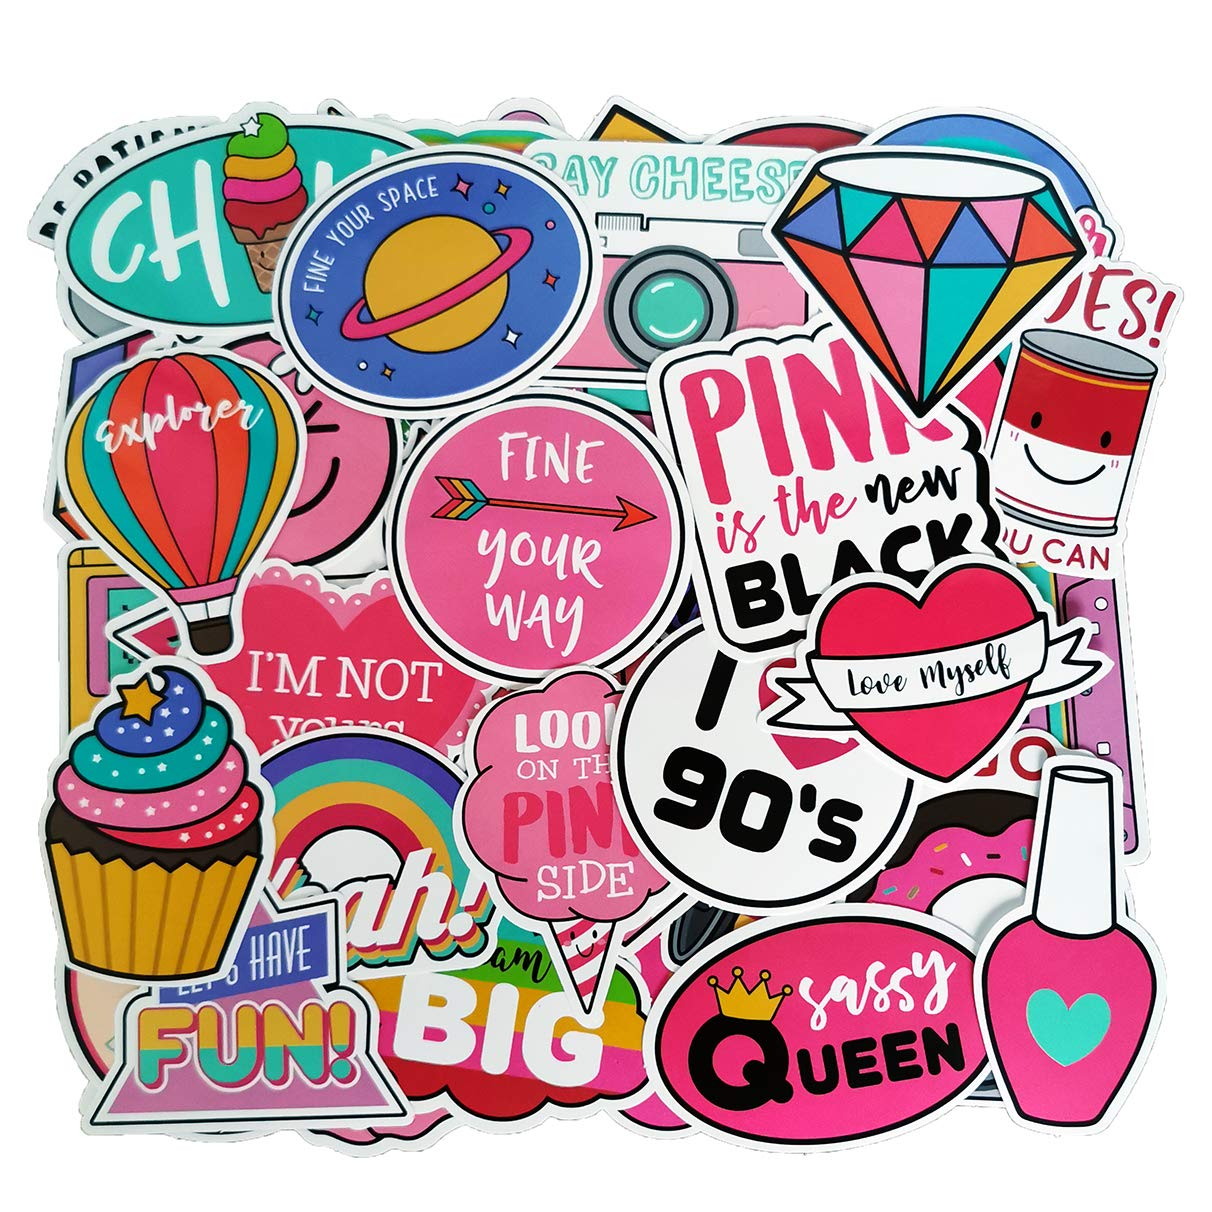 Pink VSCO Girl Cute Lovely Adorable Sticker Pack(110-pcs), No Repeat Stickers for Laptop Ipad Water Bottle Phone Luggage Guitar Gift Box Journal Bicycle Scrapbooking Planners with Waterproof PVC